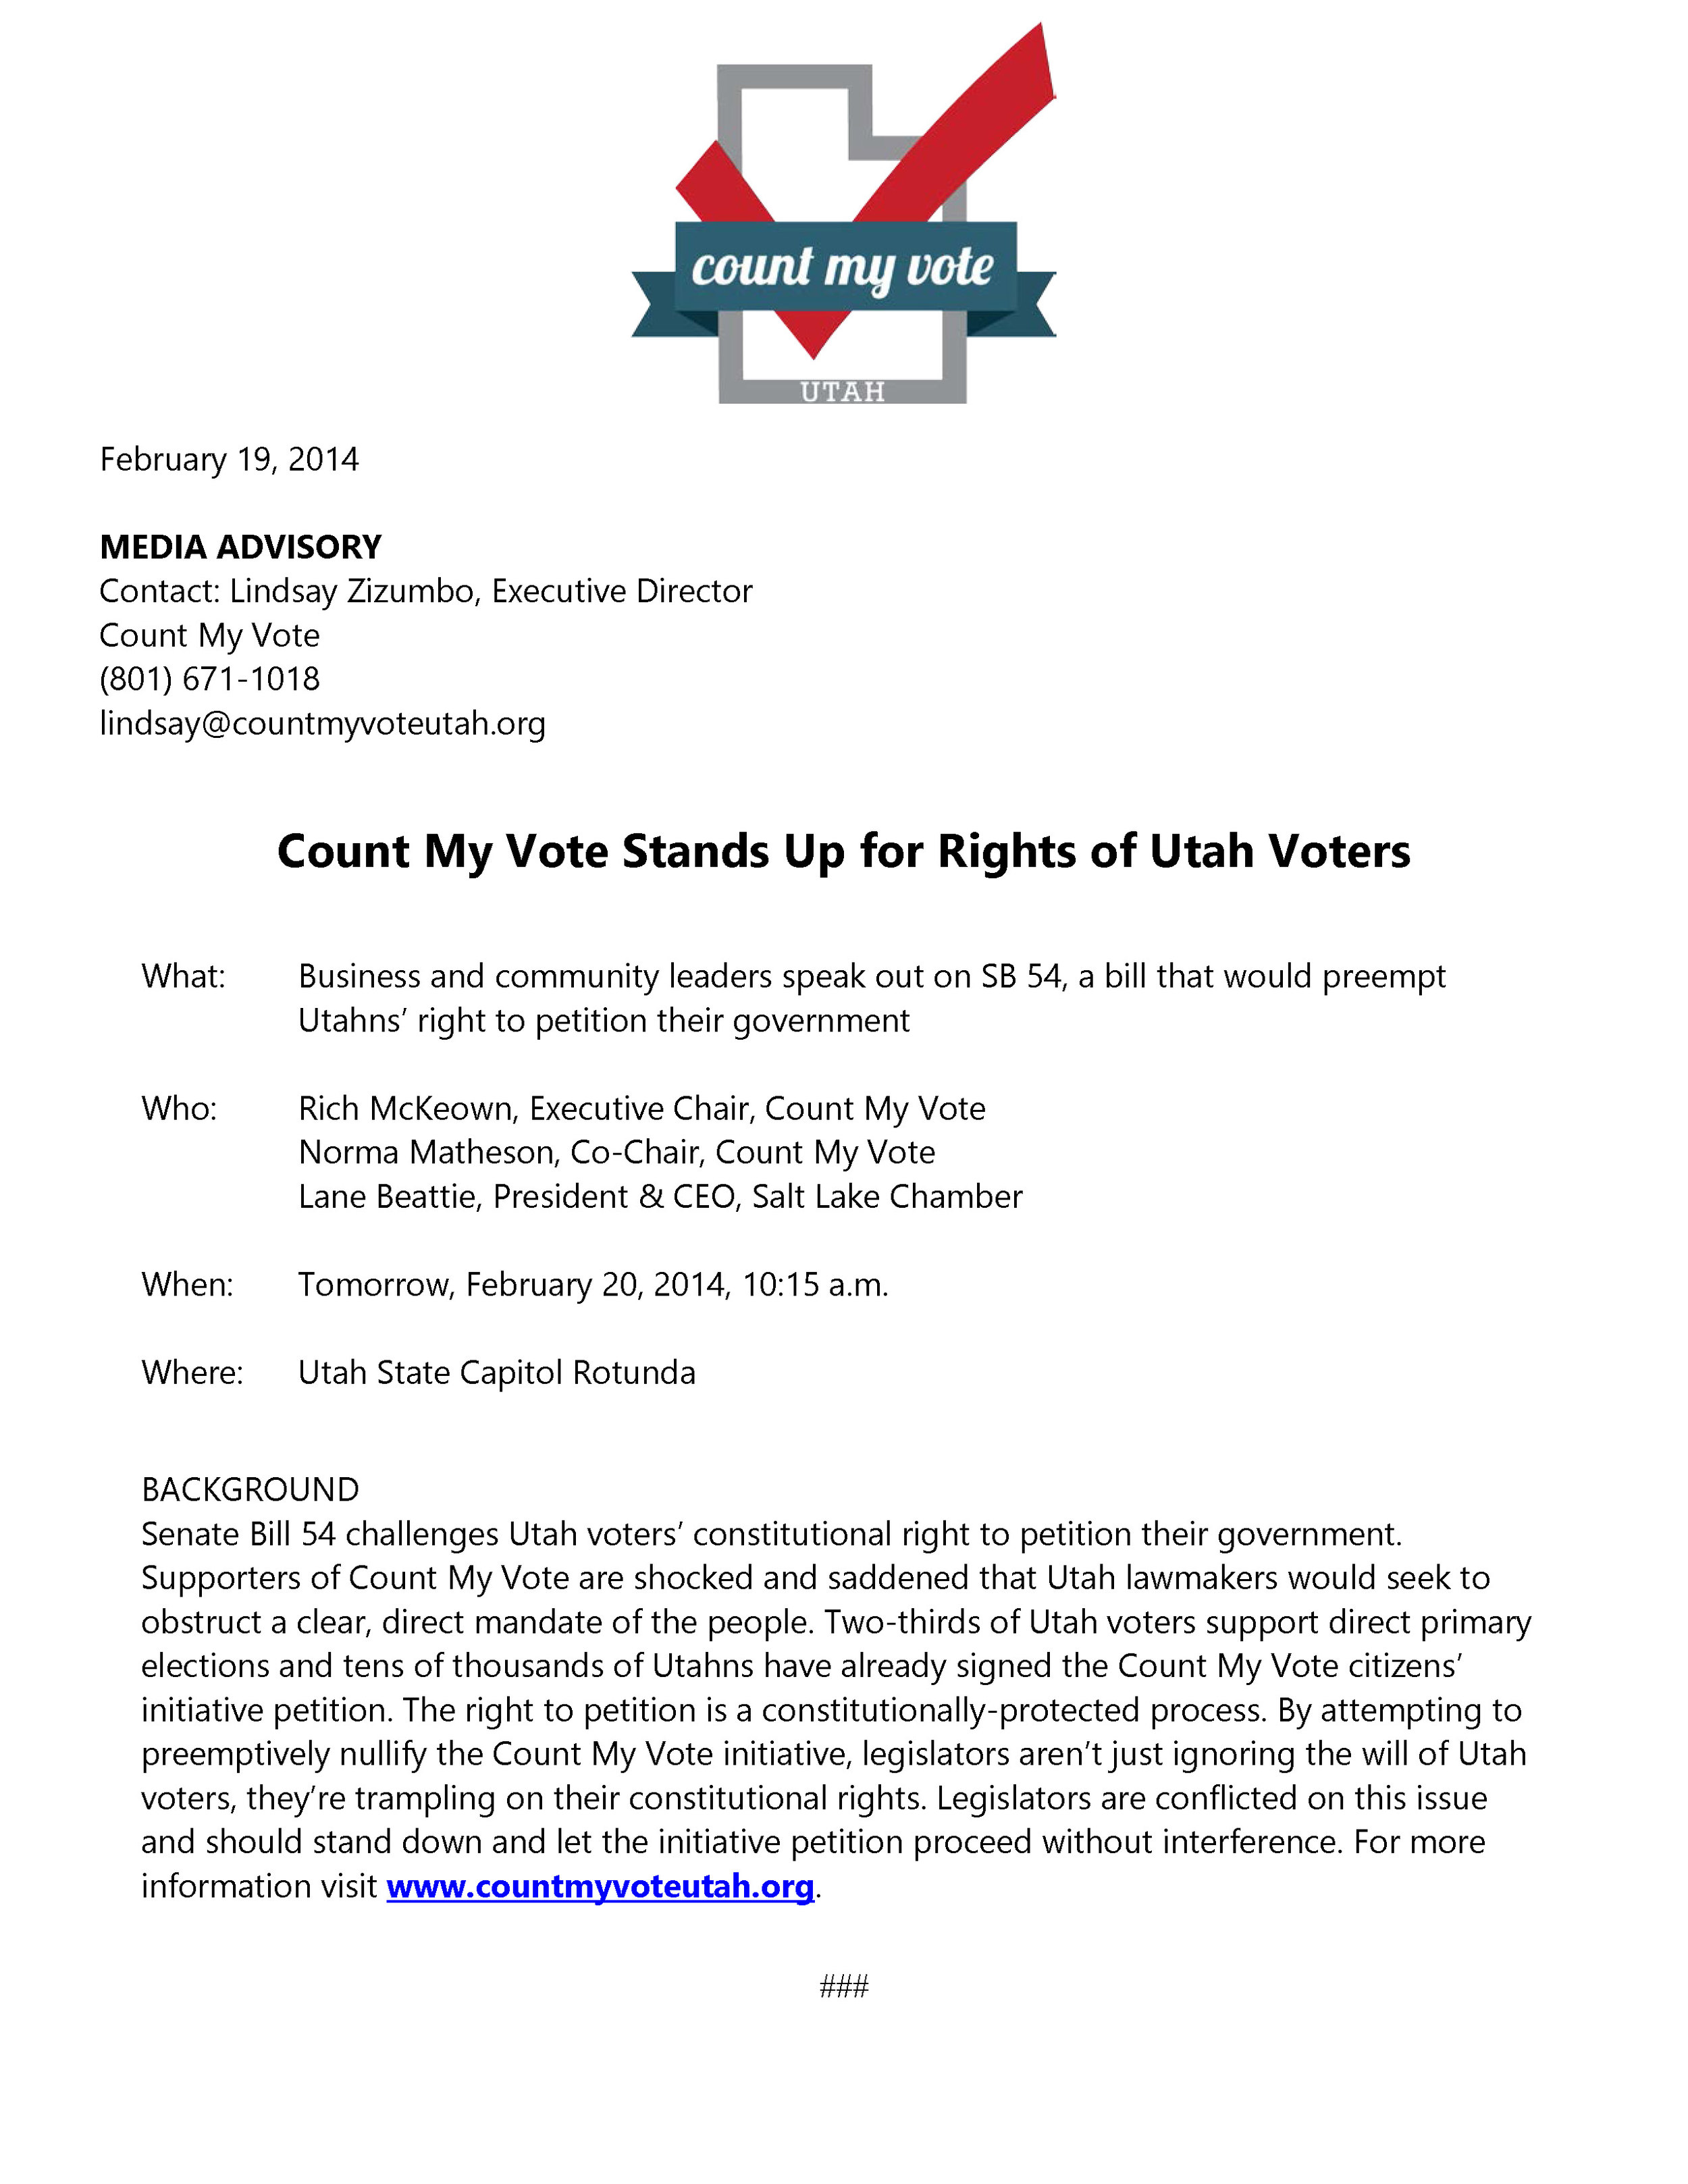 Media Advisory - Count My Vote Stands up for Rights of Utah Voters.jpg